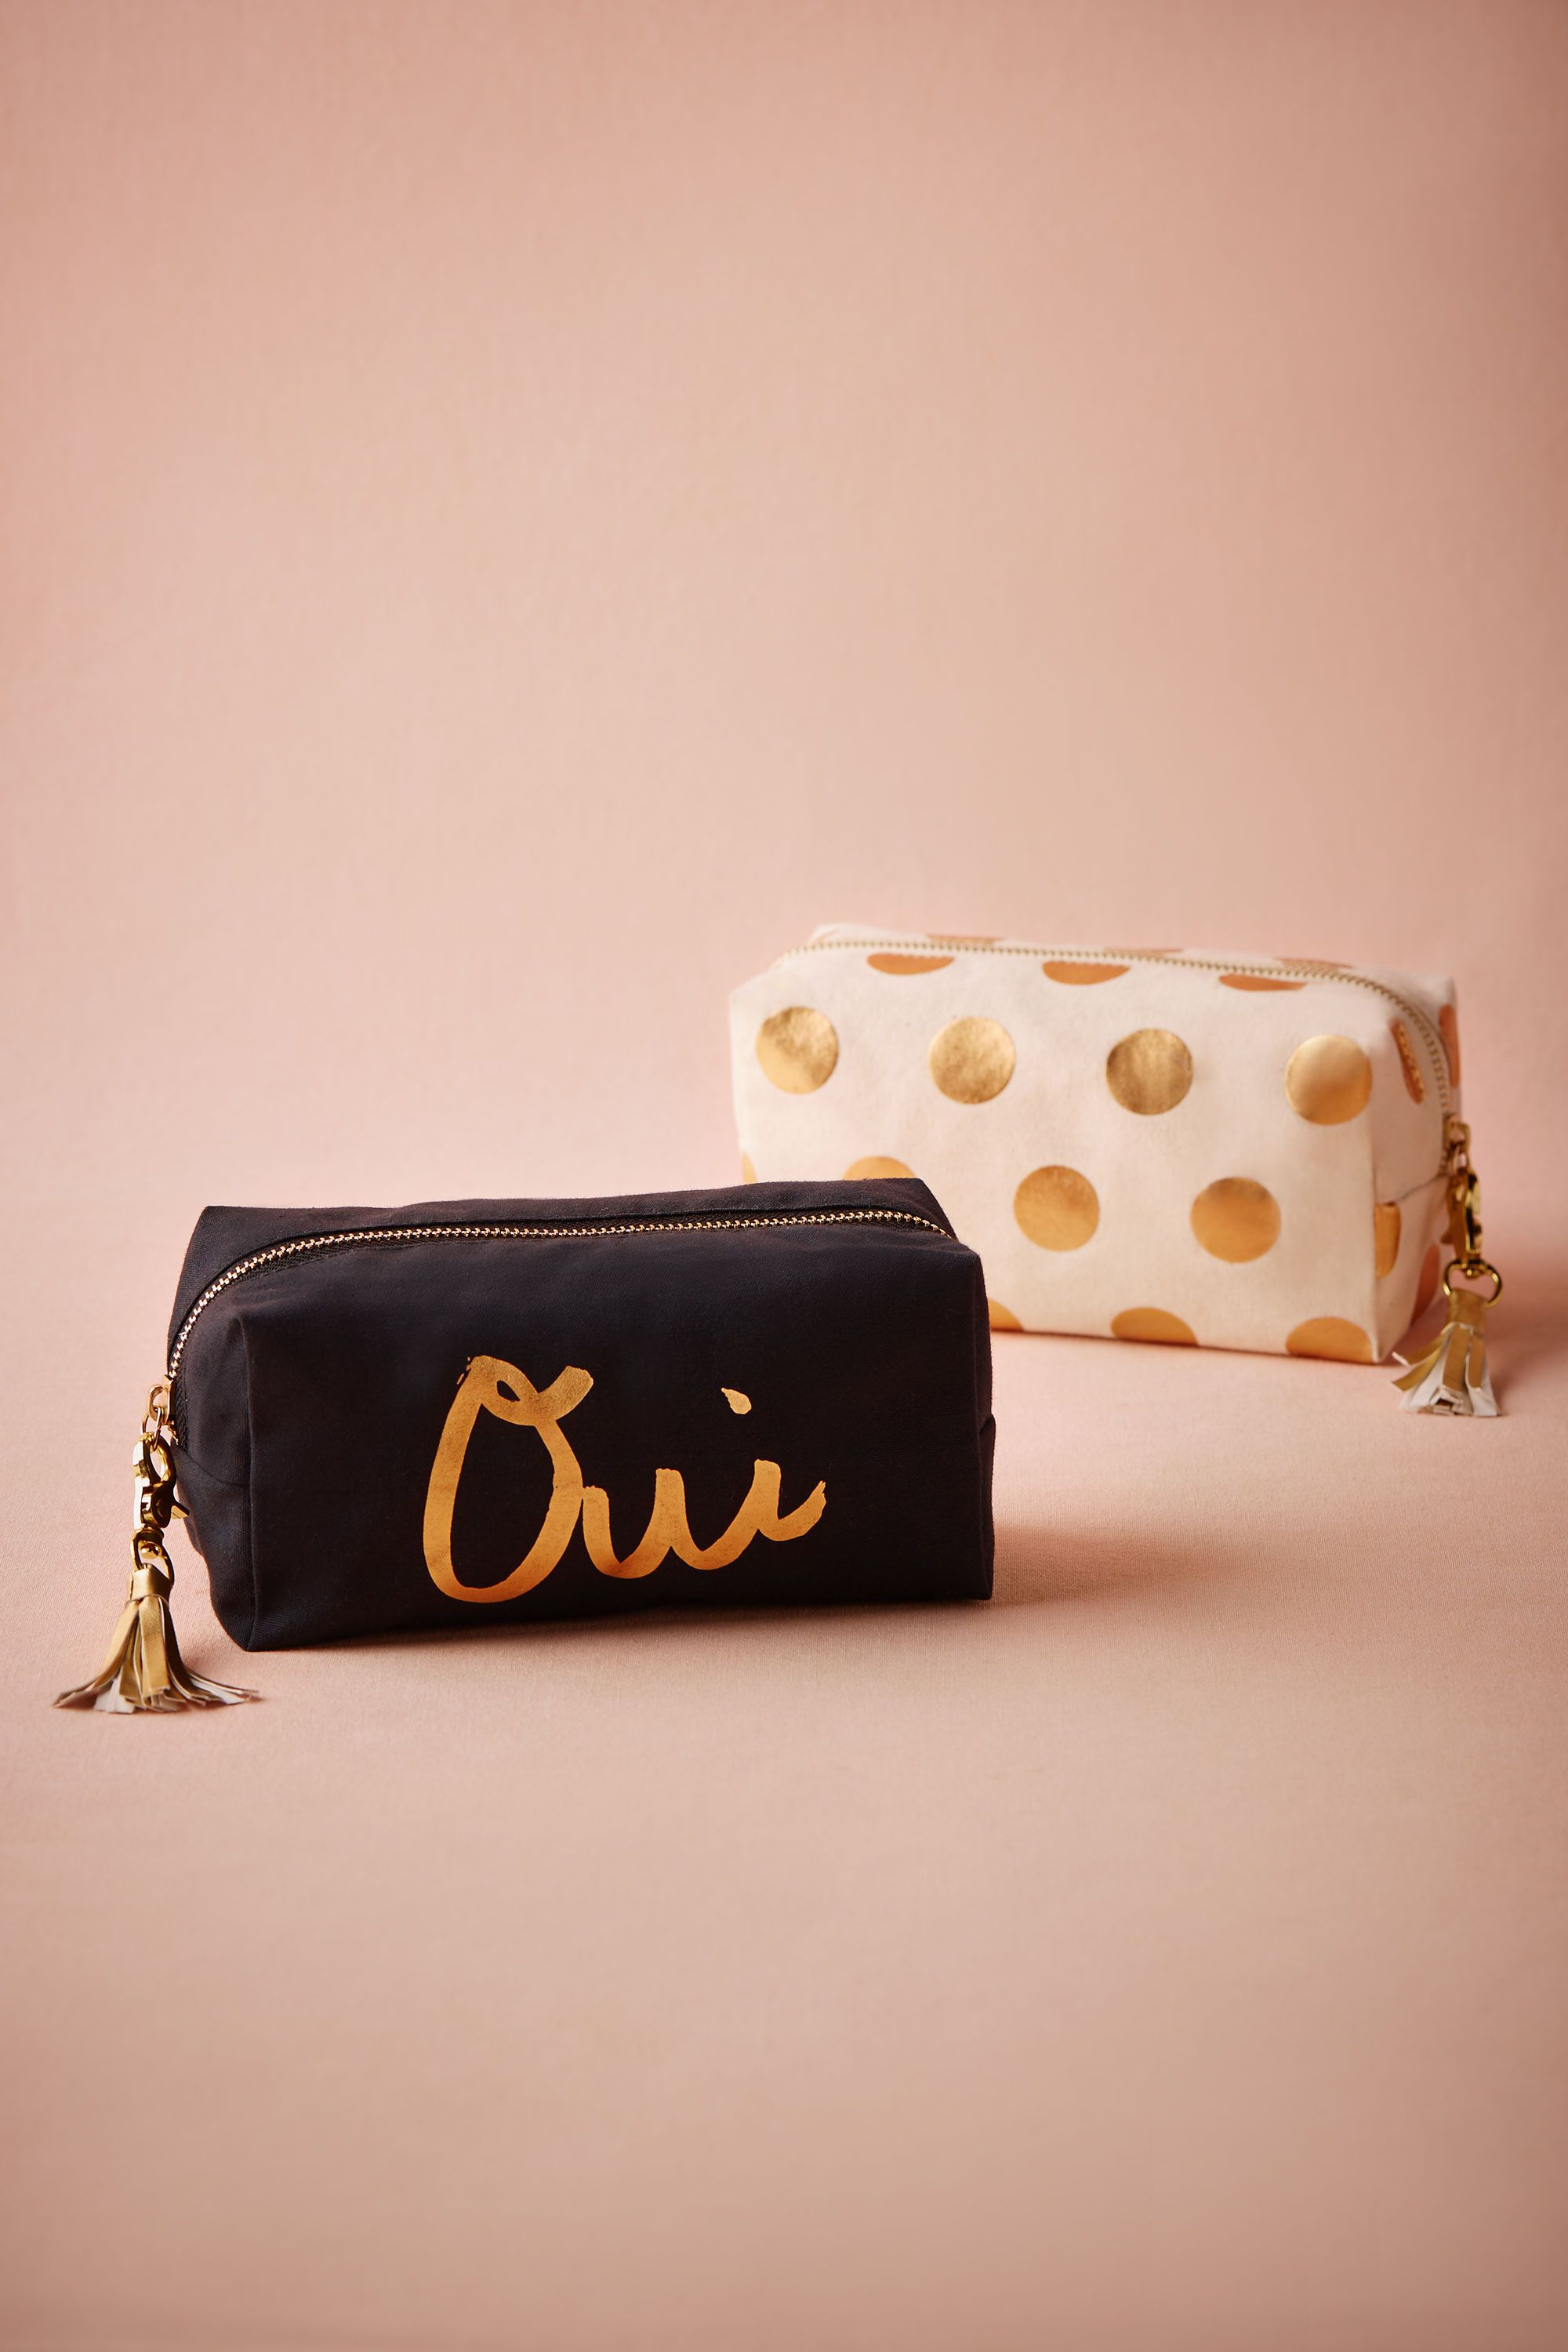 Gift Guide for the bride-to-be - Fill a cute cosmetic bag with her favourites